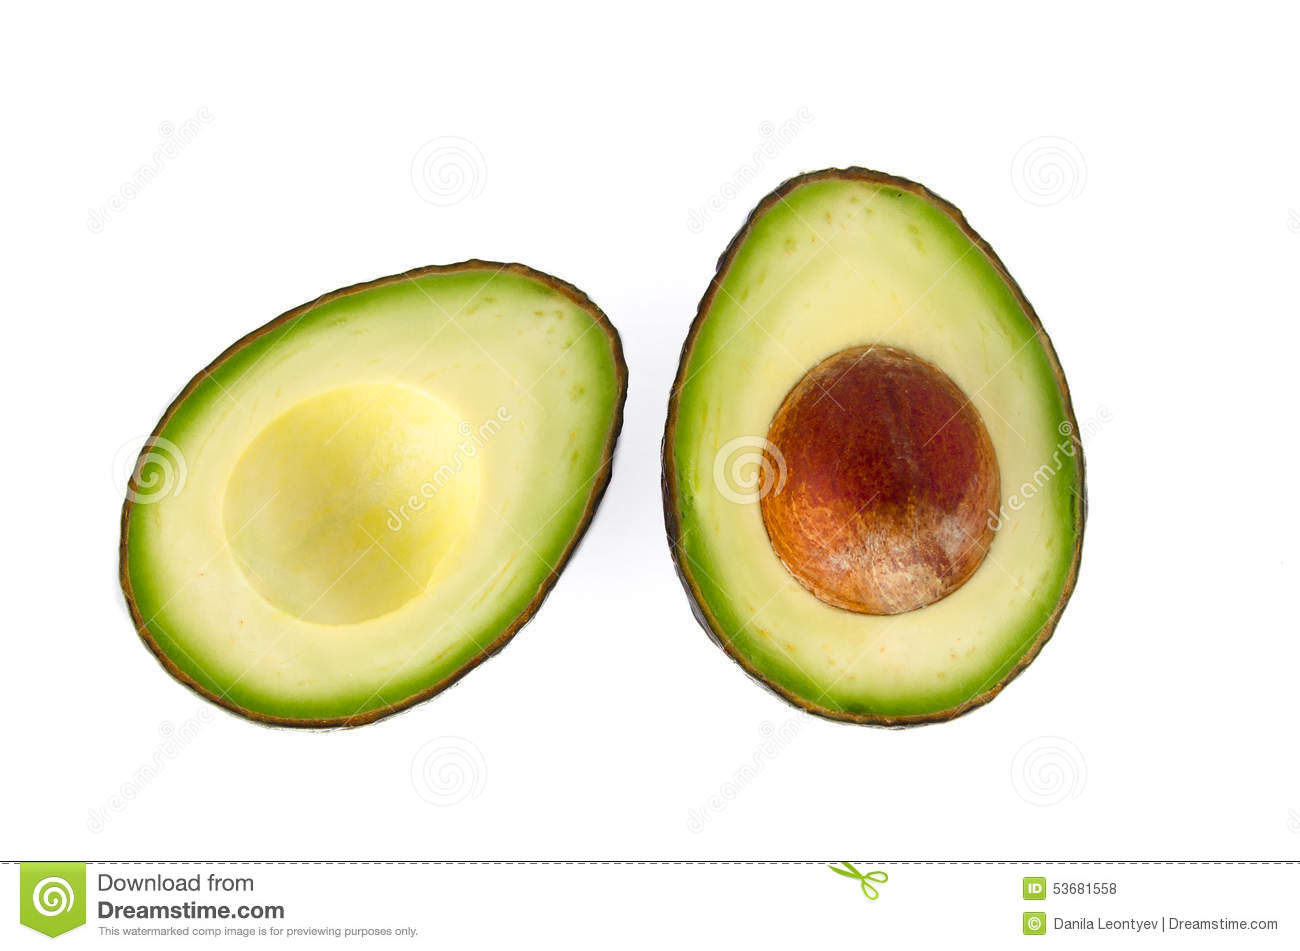 how to cut up a avocado